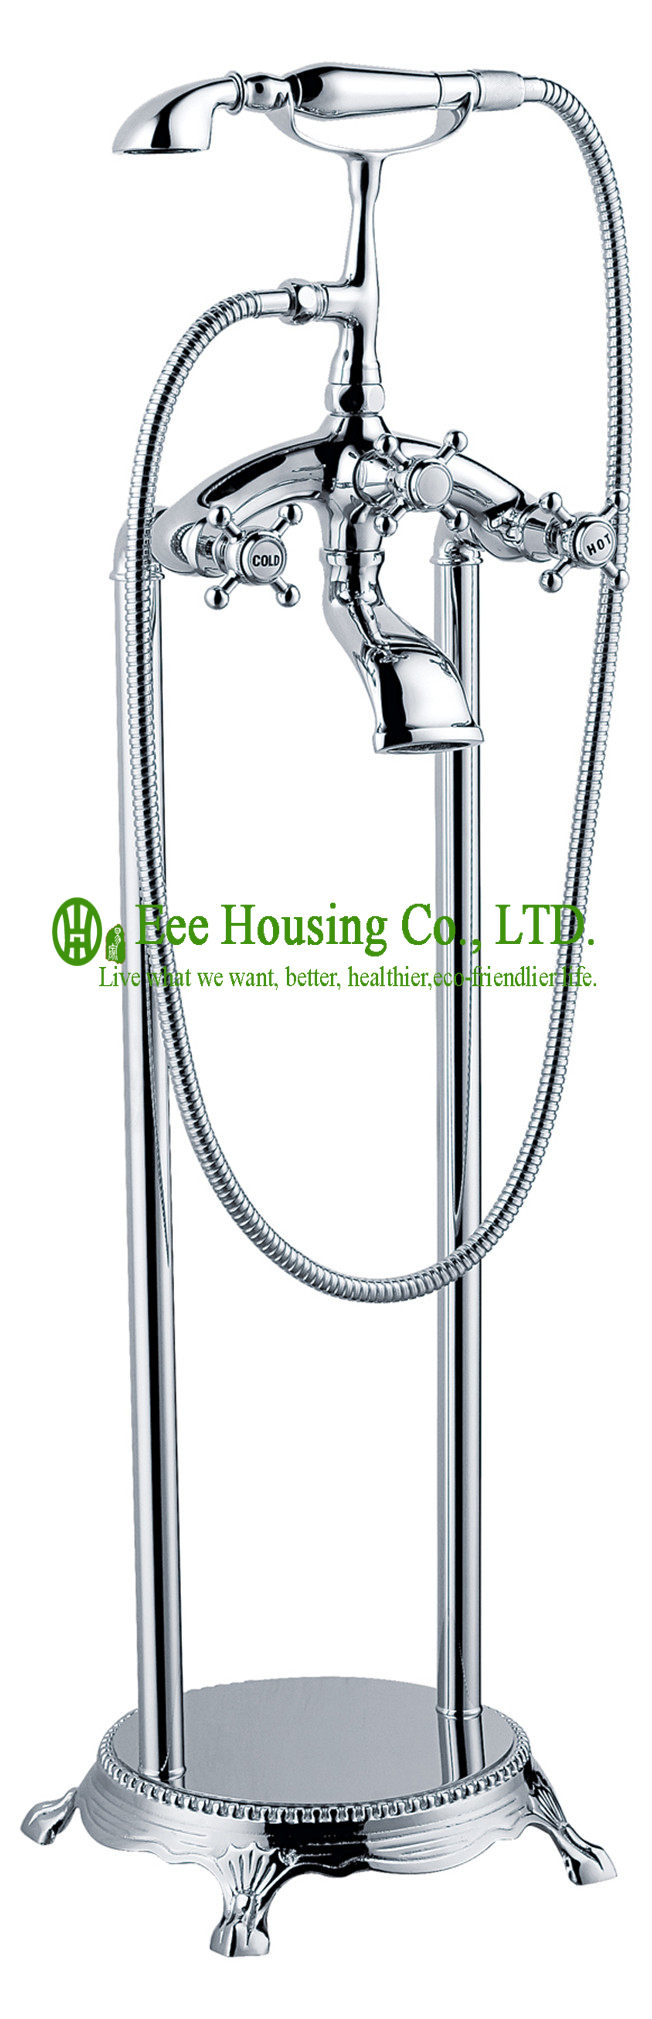 Free Shipping Brass Floor-standing Shower Bath Mixer,bathtub Faucet,chrome Finished,shower System,bathtub Accessories